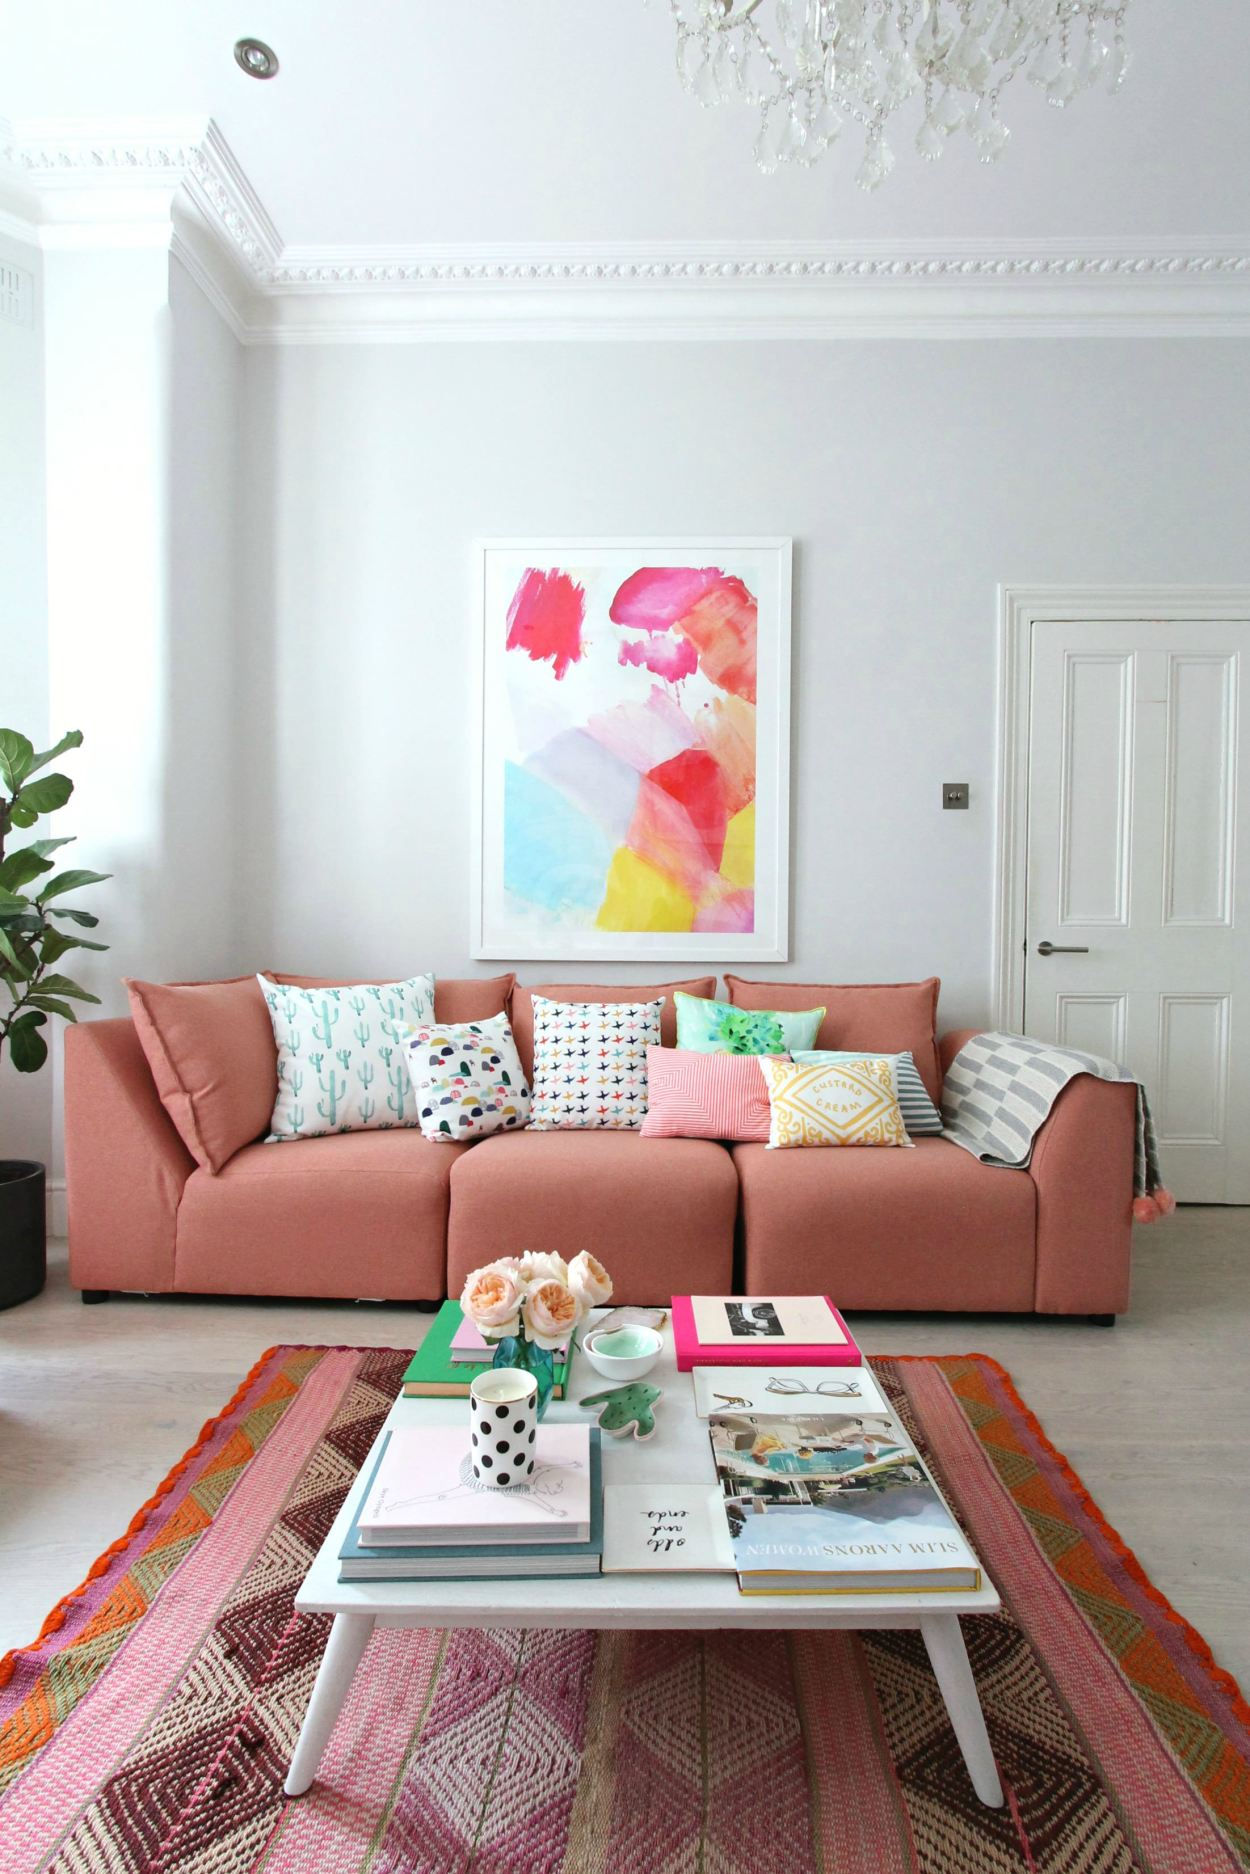 How To Style A Pink Color Sofa